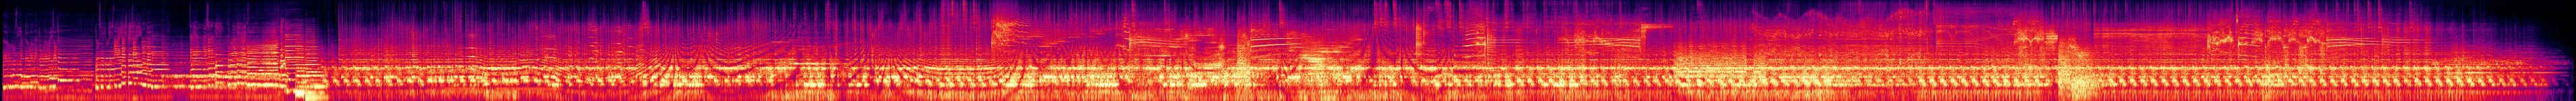 The Black Mass - Spectrogram.jpg